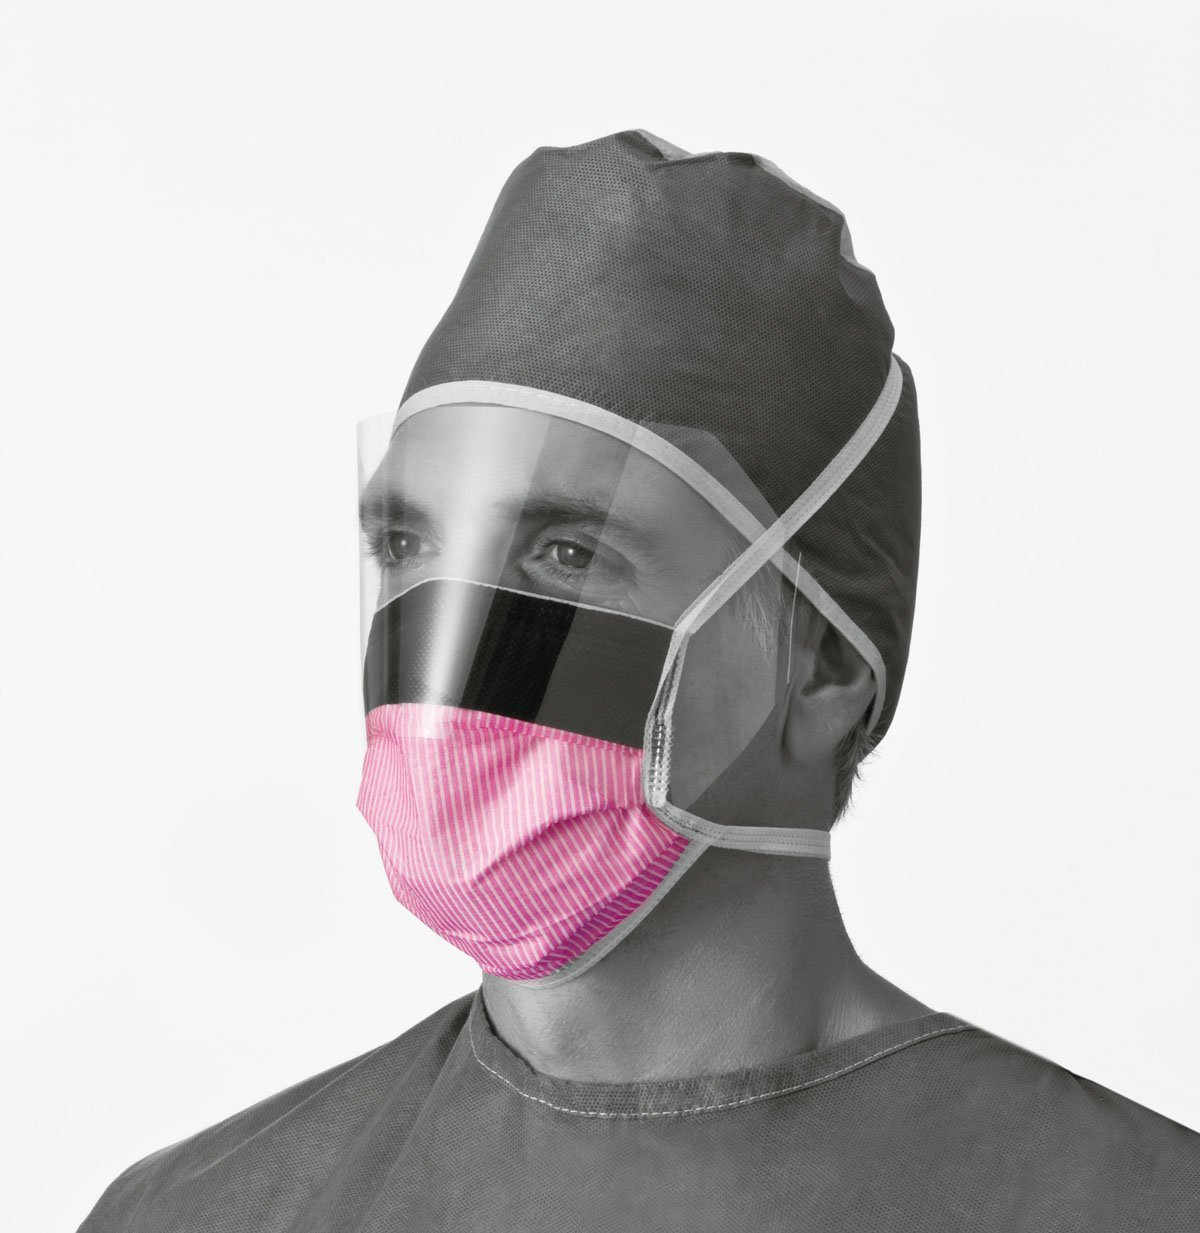 Fluid-Resistant Surgical Face Masks with Eyeshield,Purple, Qty 100